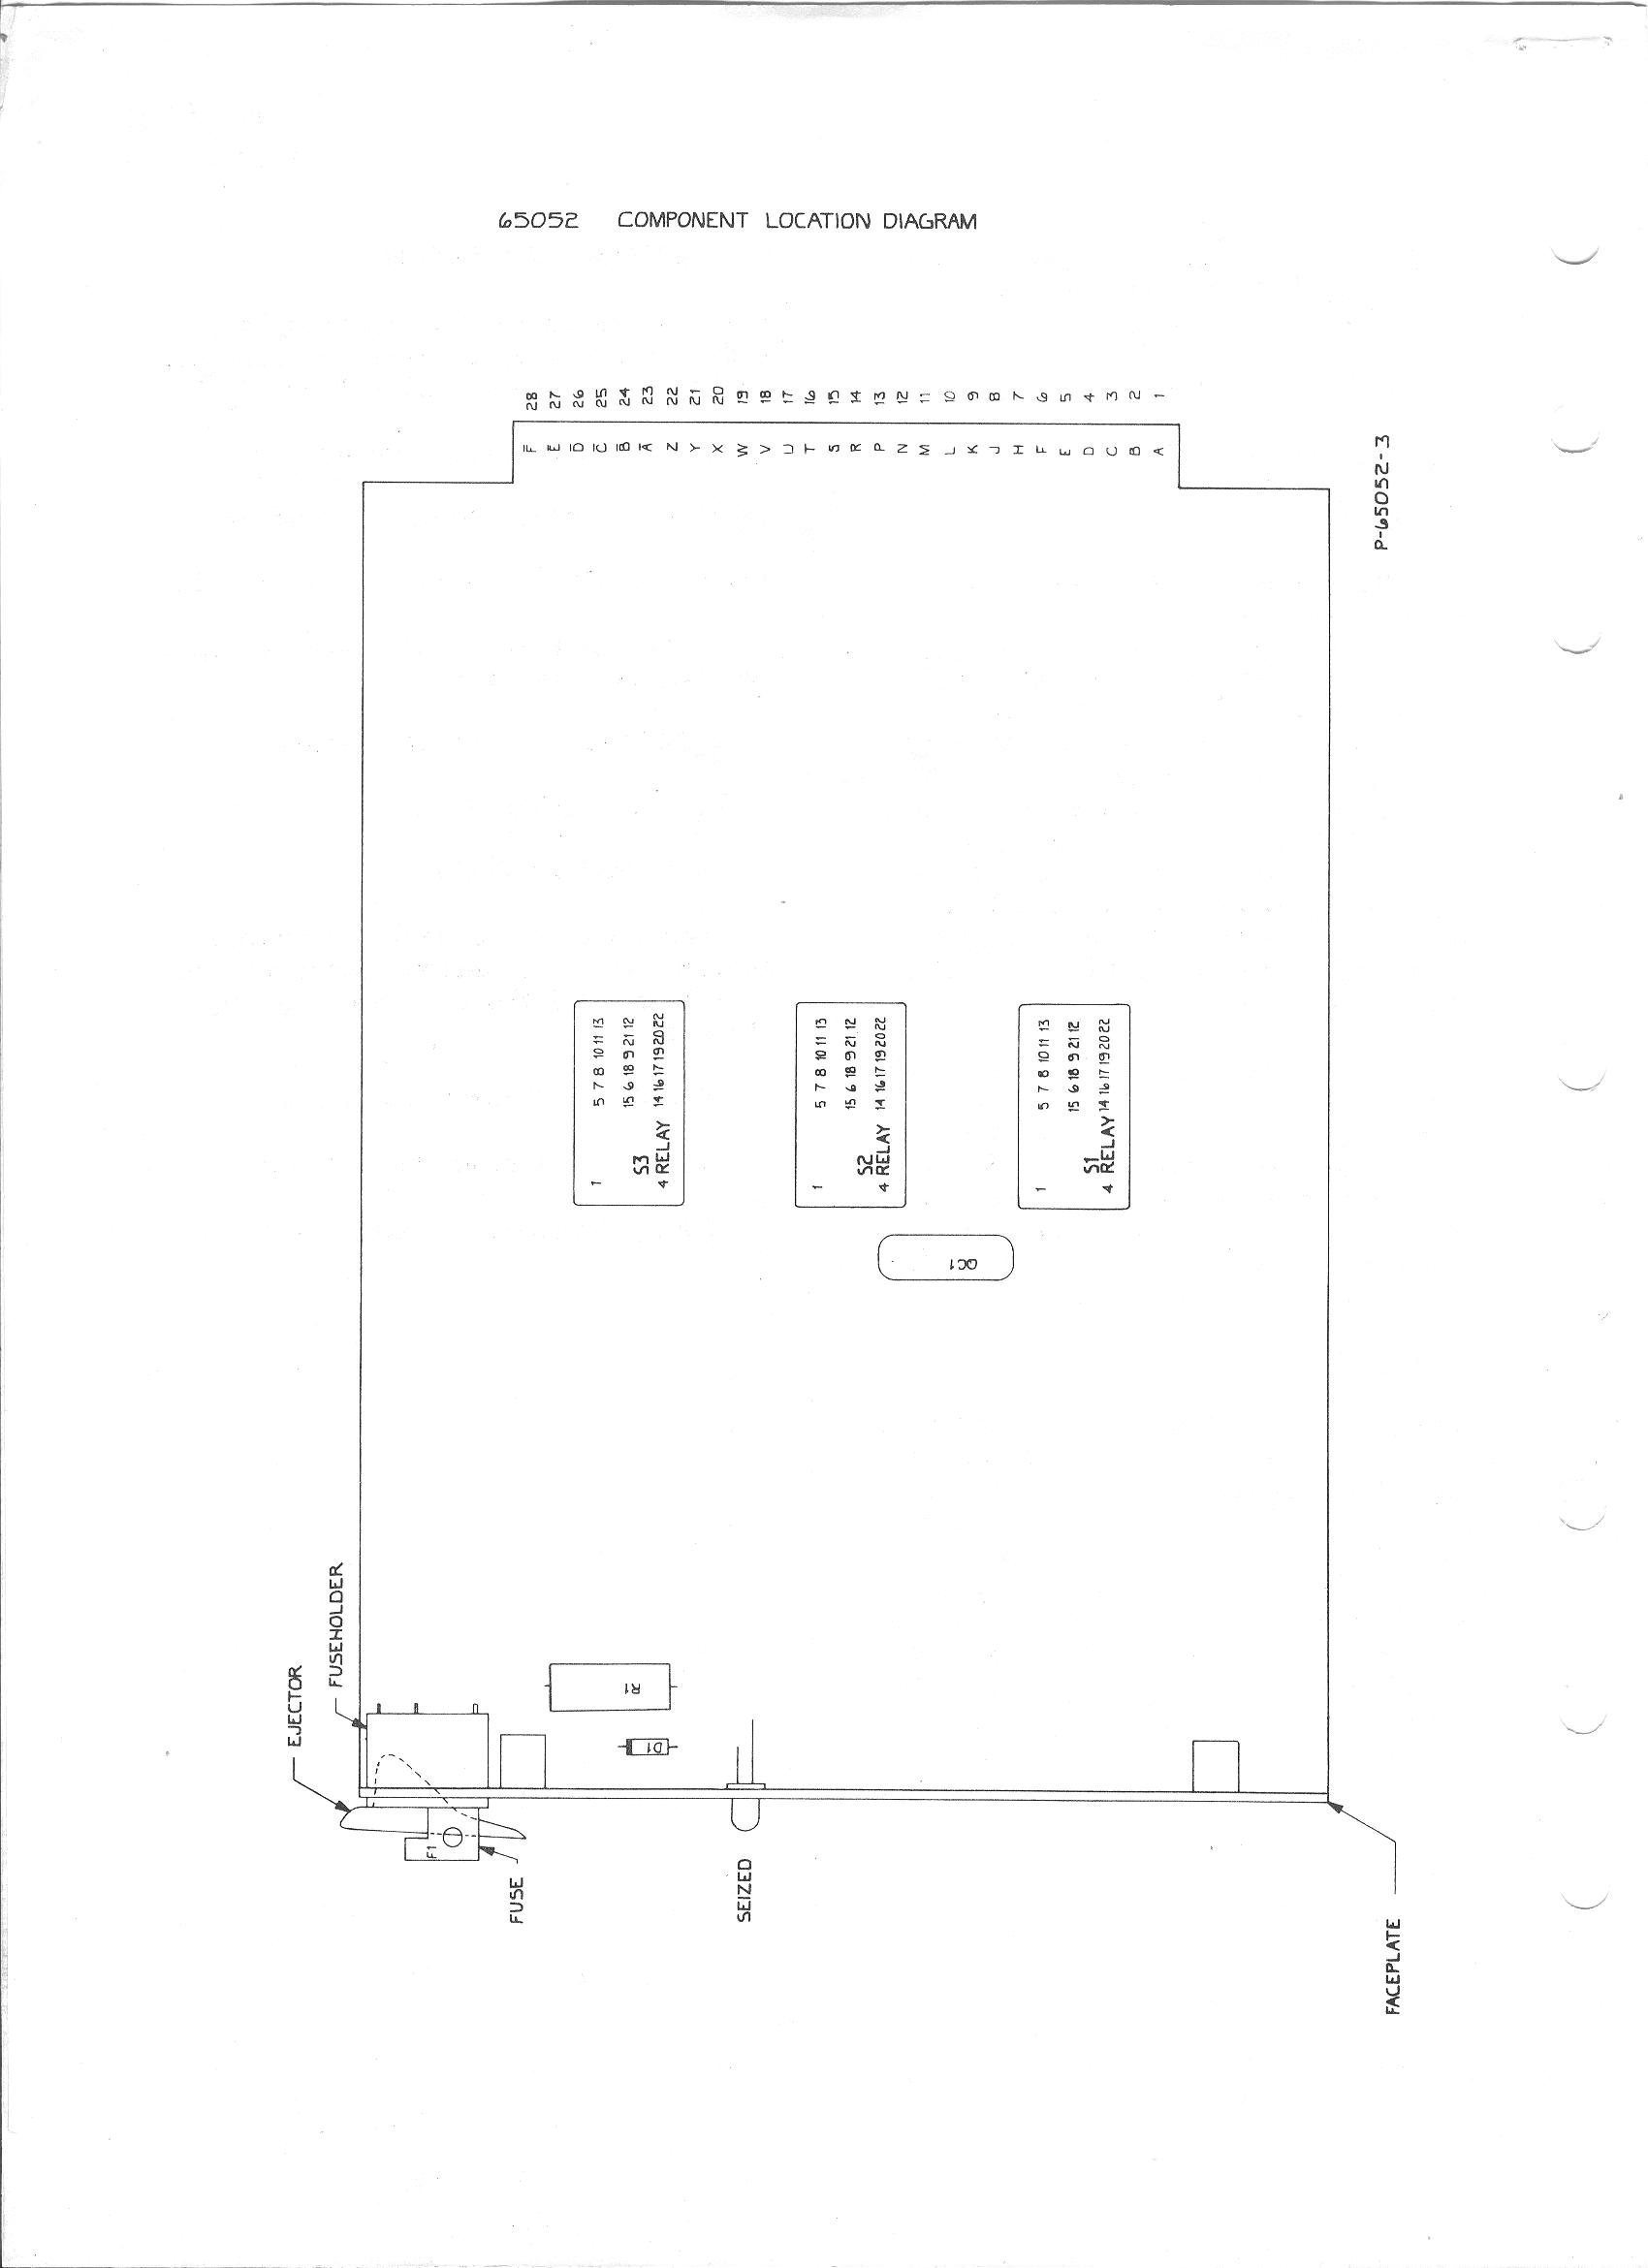 Telephone Technical References Relay Hold On Circuit Diagram 65052 Sleeve Control Pages 1 2 3